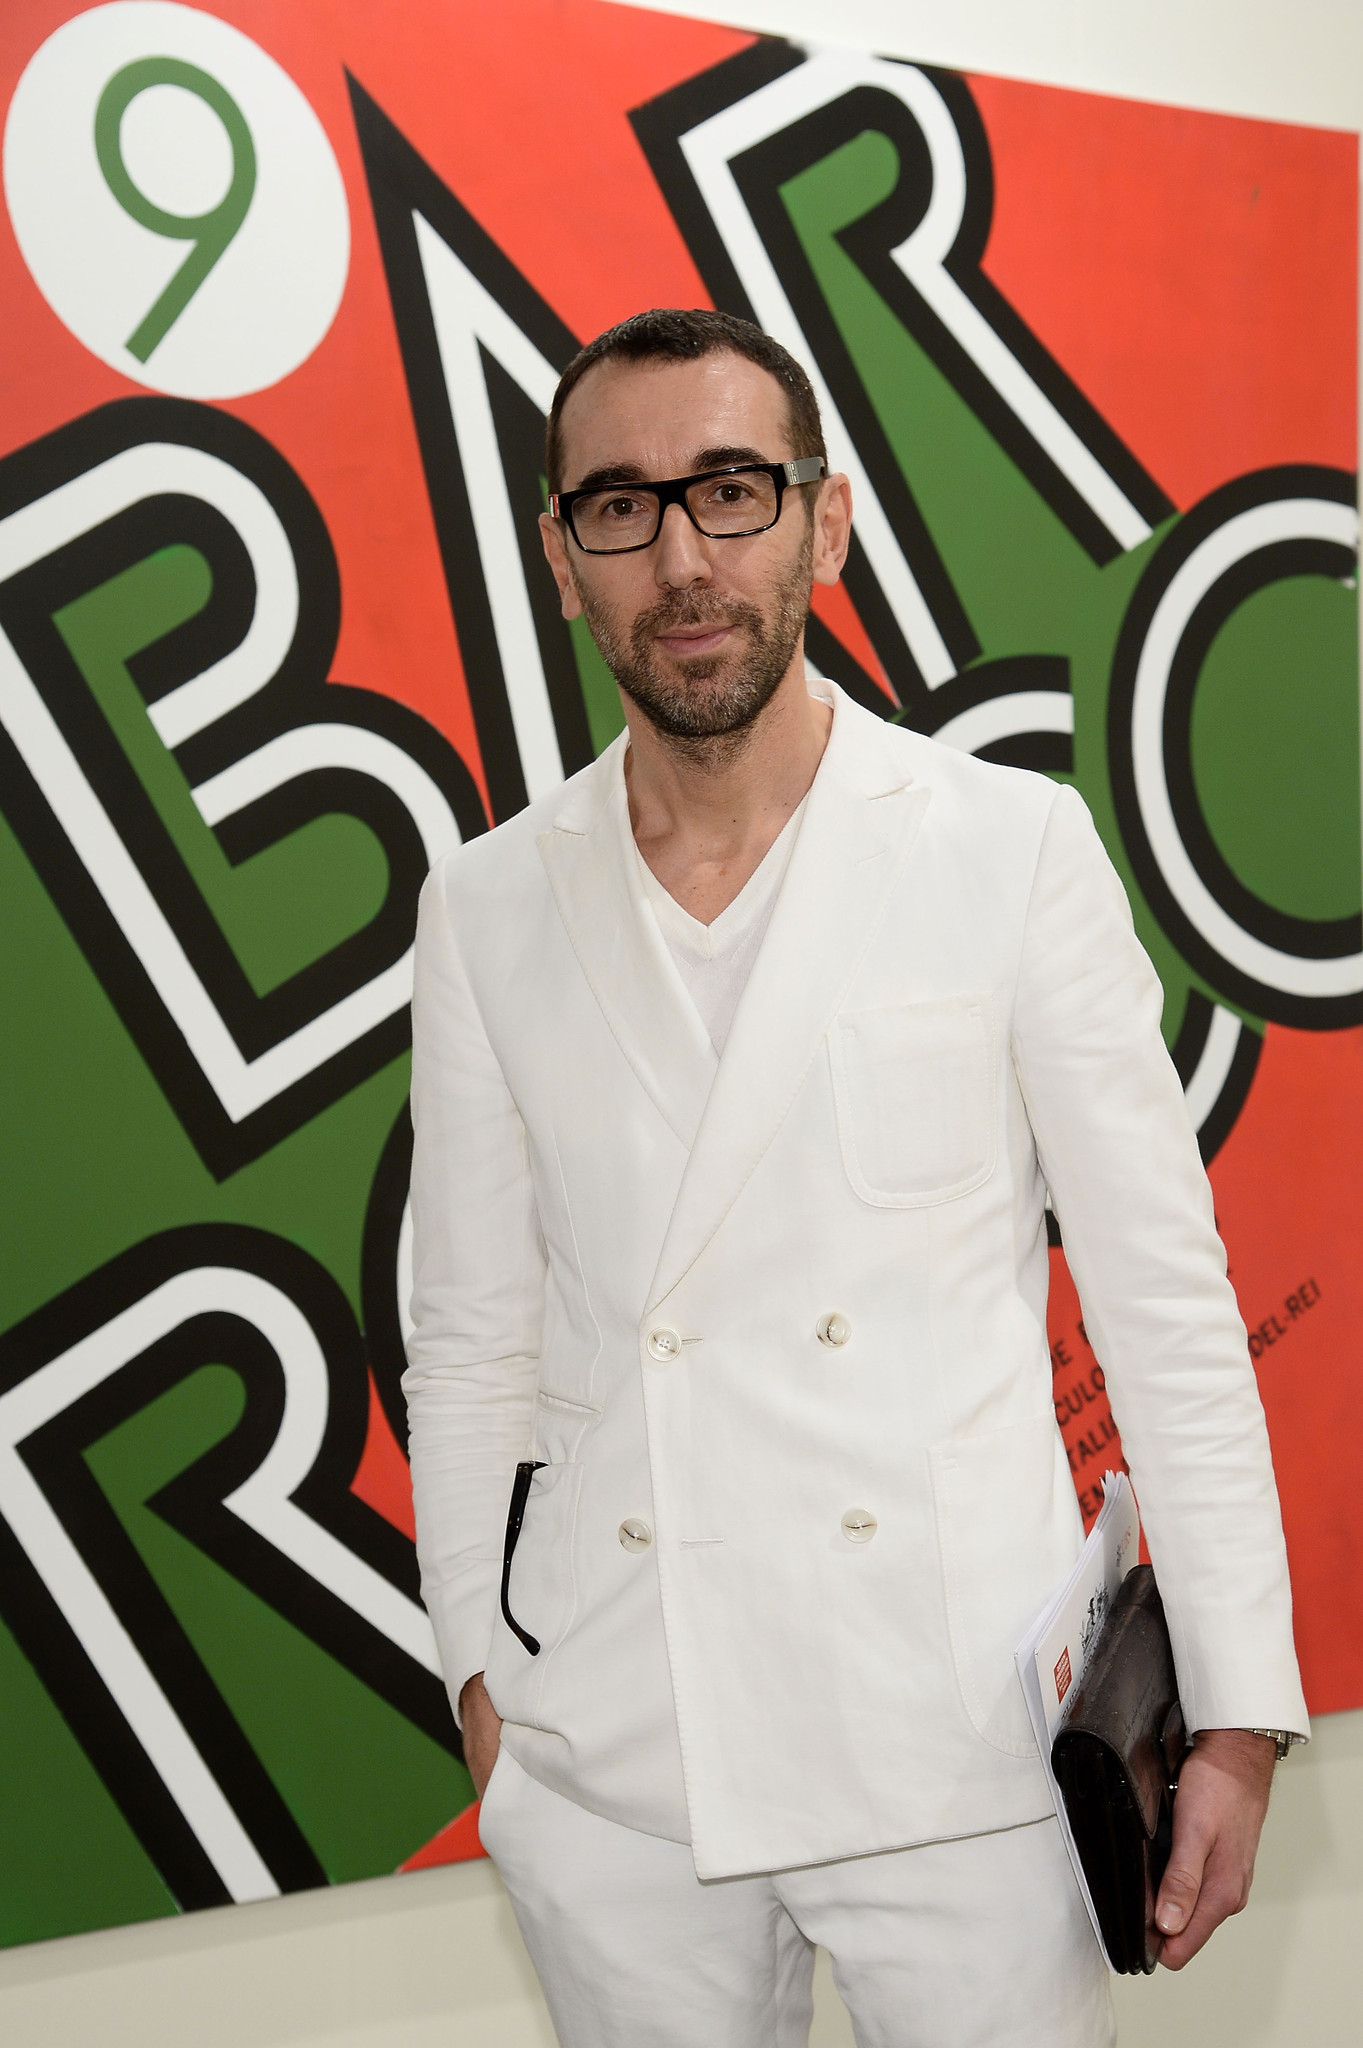 PHOTOS: Artists, celebs at Art Basel - Art Basel Miami Beach 2013 - VIP Preview